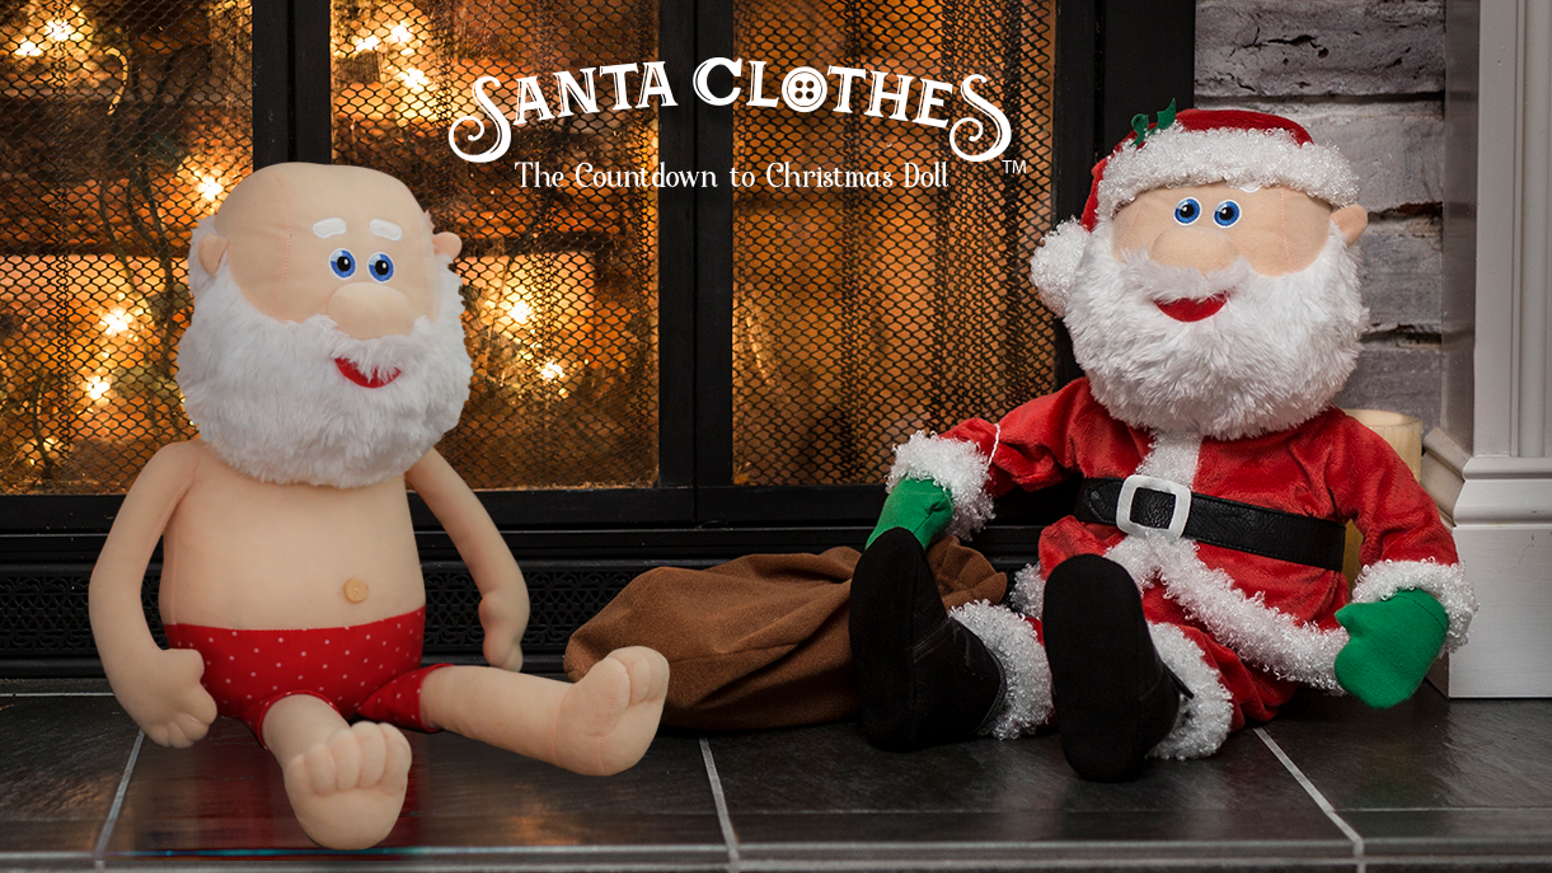 How Many Days Until Christmas Eve.Santa Clothes The Countdown To Christmas Doll By Kevin A